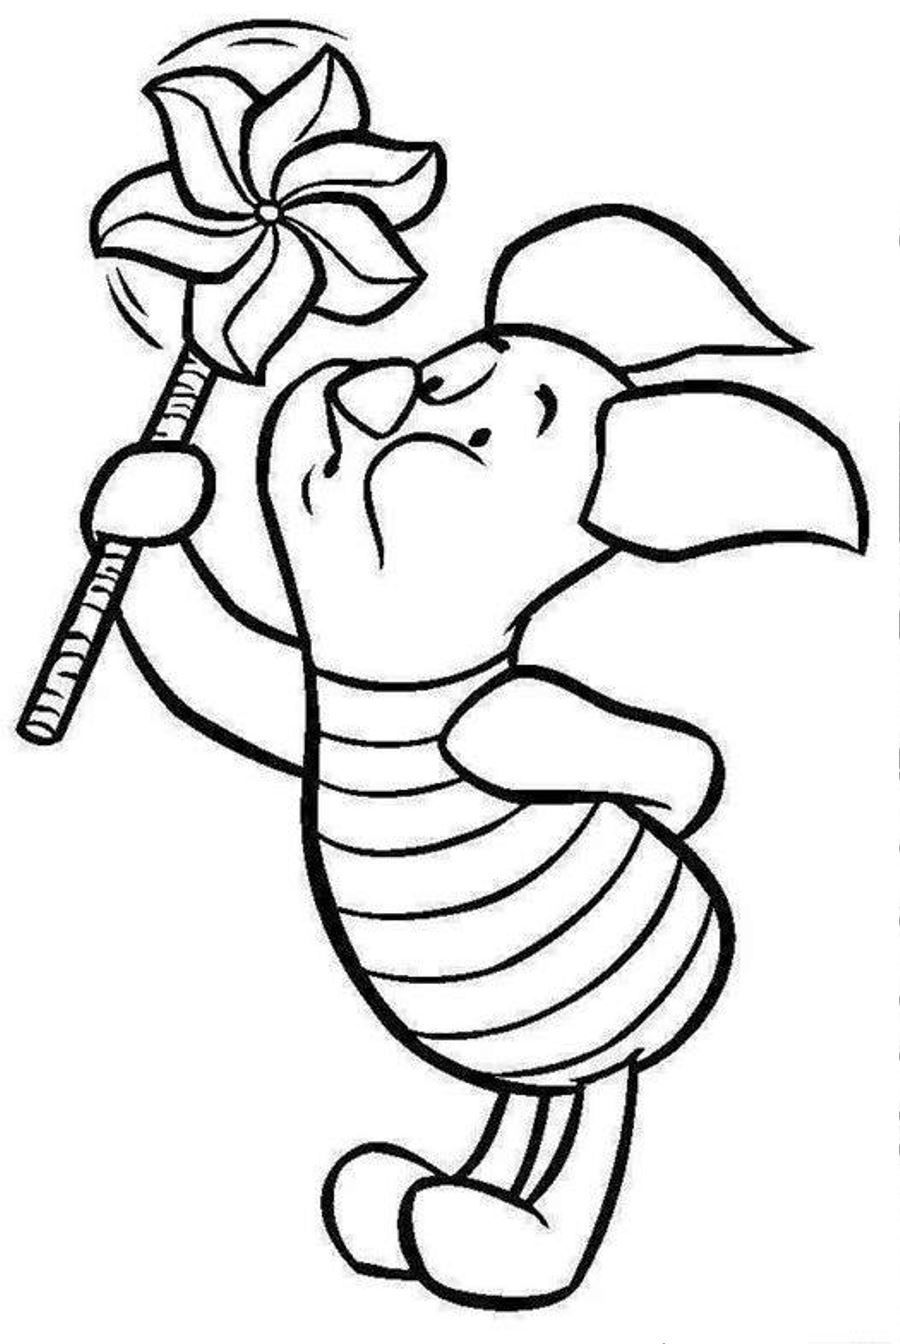 Winnie The Pooh Pictures Coloring Pages | Cooloring.com | Coloring ...